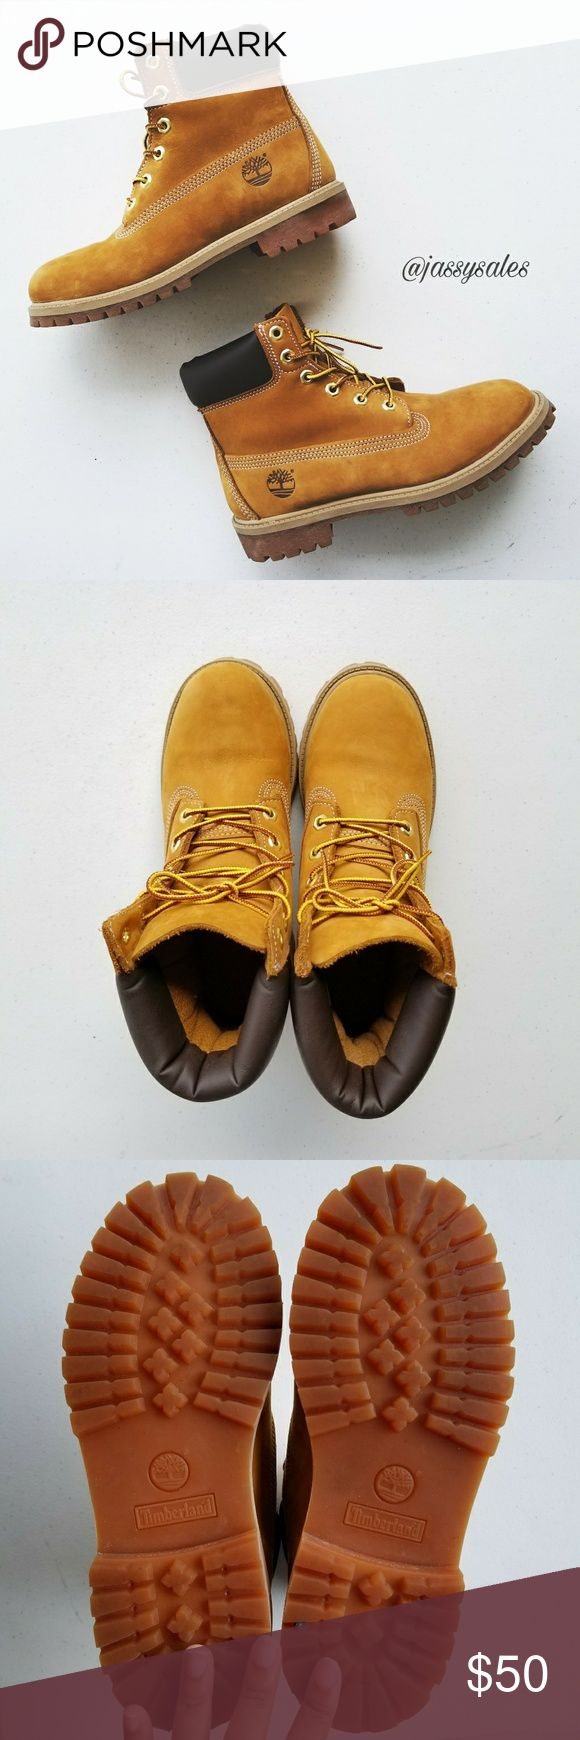 Classic Timberland Boots Women's Size 7 》 Size: The size is a 5.5 in youth,  however they will fit a 7 in womens! I am a 7.5 in womens and they are a perfect fit (no socks), so i would recommend buying for a size 7 WOMAN or a 5.5 YOUTH/BOYS.  》》 The condition is almost new! I've only worn these babies about 3 times,  but they're small on me now.  They need a new home.  (: Timberland Shoes Lace Up Boots